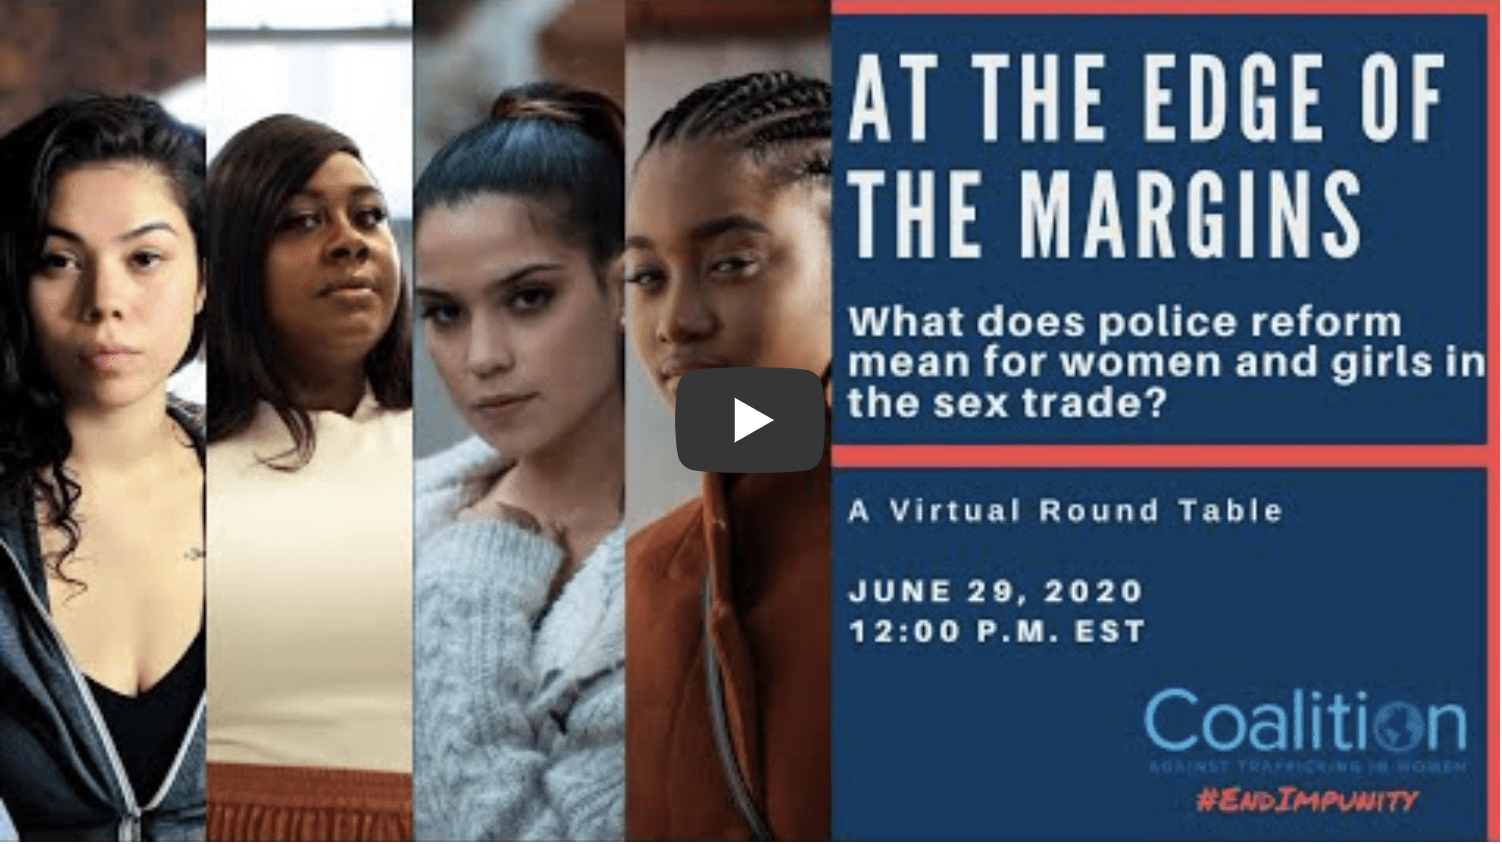 What Does Police Reform Mean for Women and Girls in the Sex Trade?